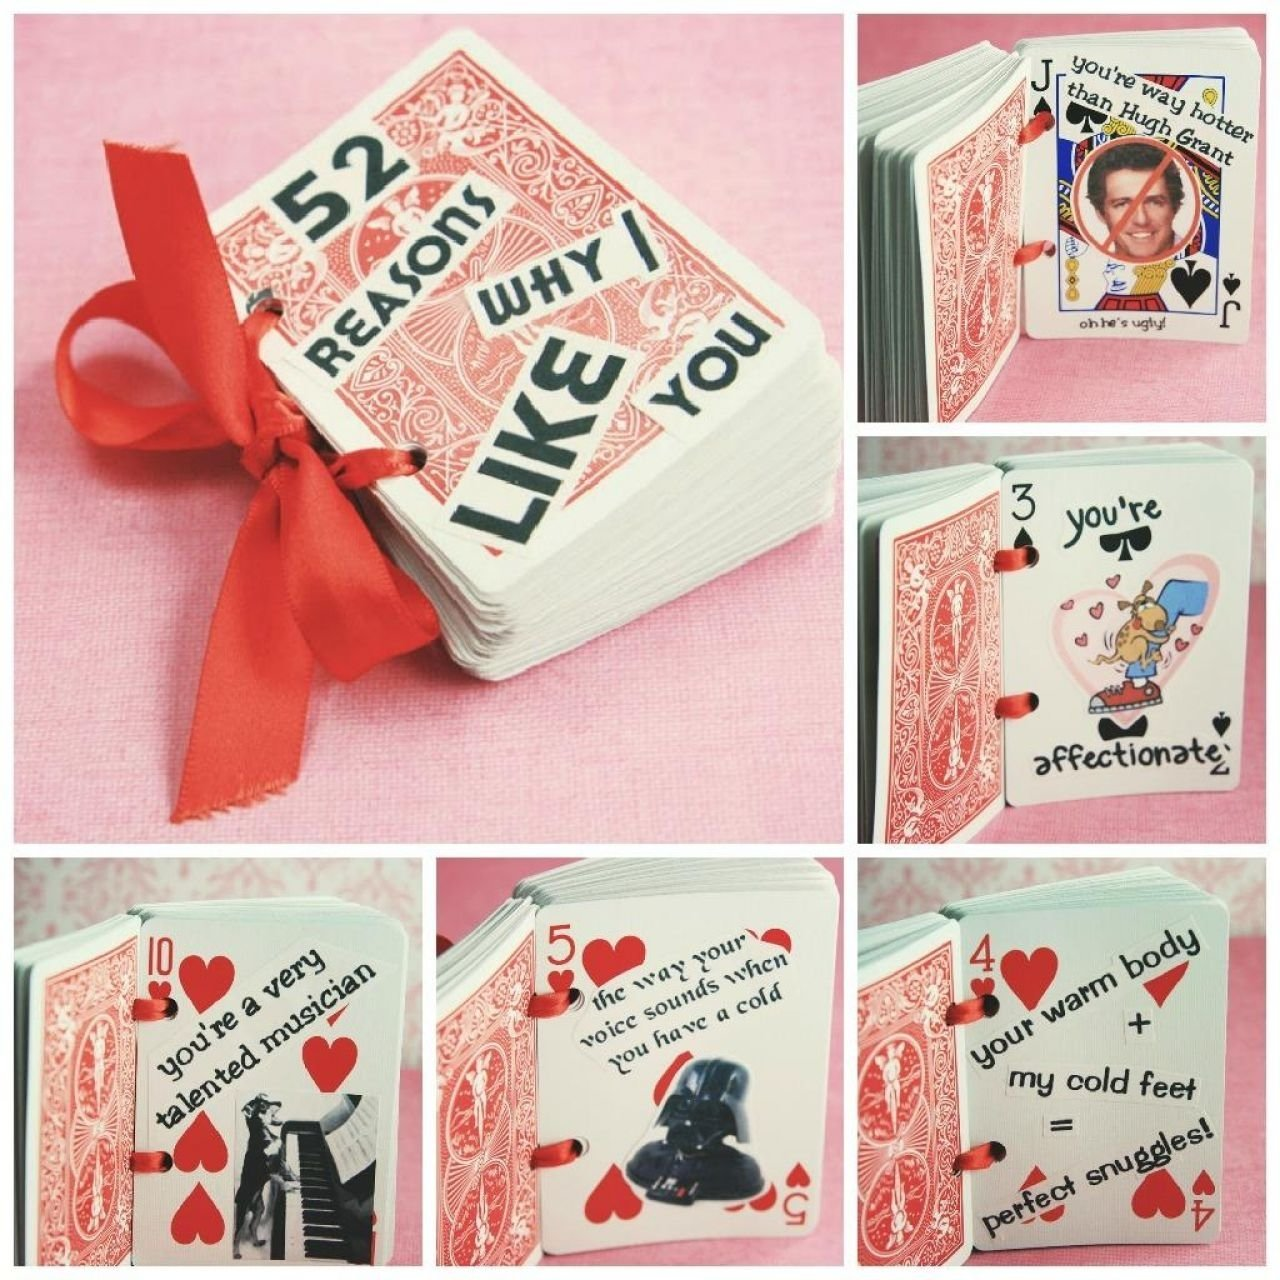 10 Gorgeous Valentines Day Gift Ideas For Men valentines day crafts him lovely valentine gifts your dma homes 12 2020